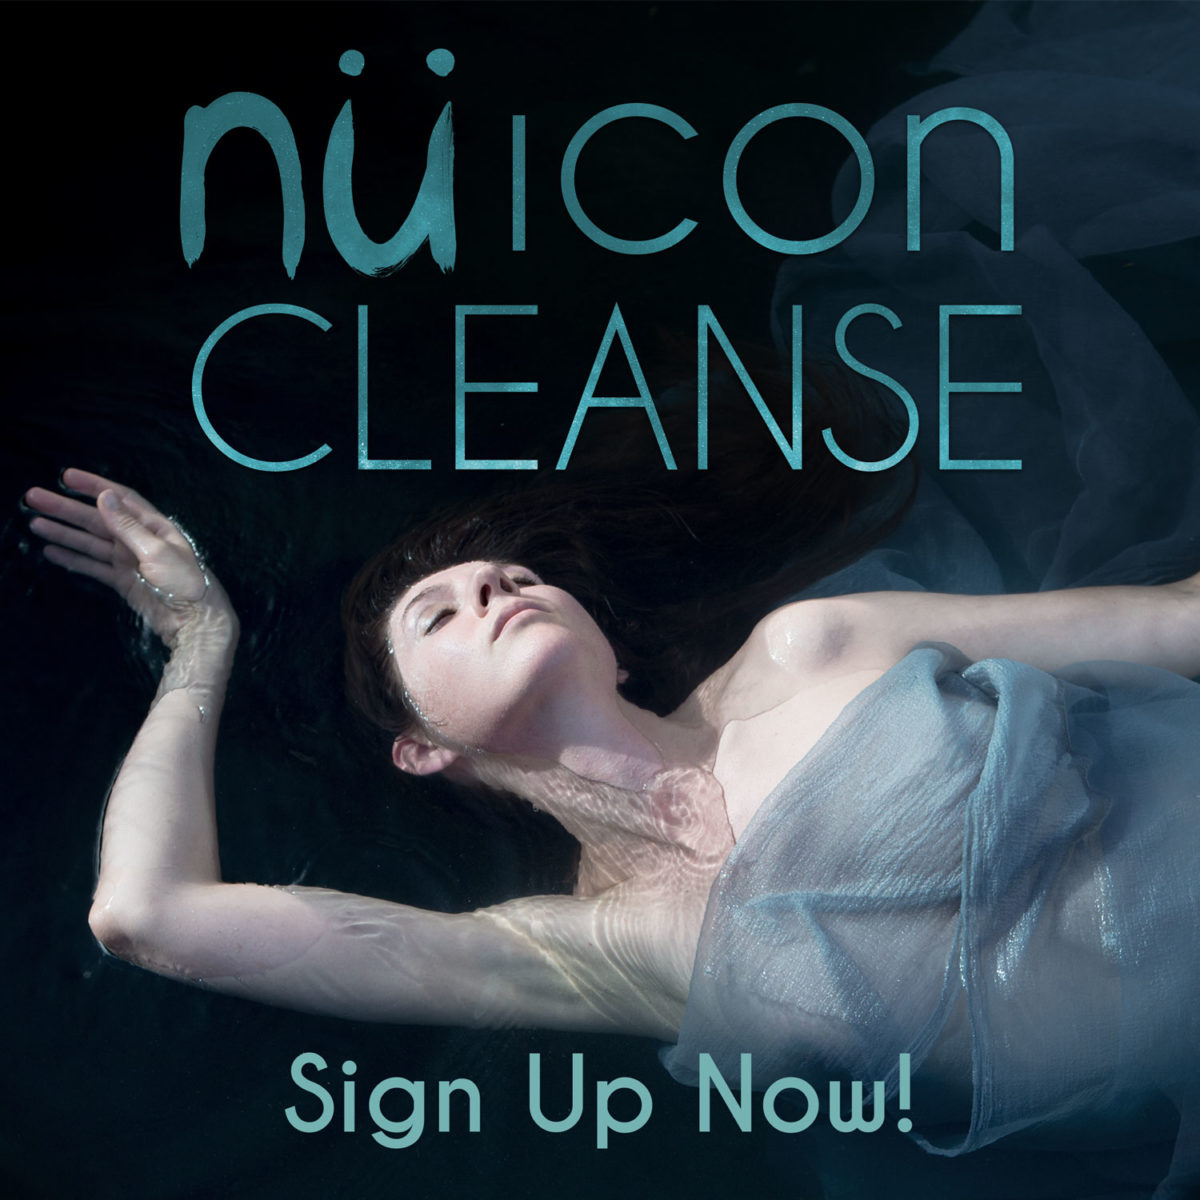 Sign up for the nü Icon Cleanse